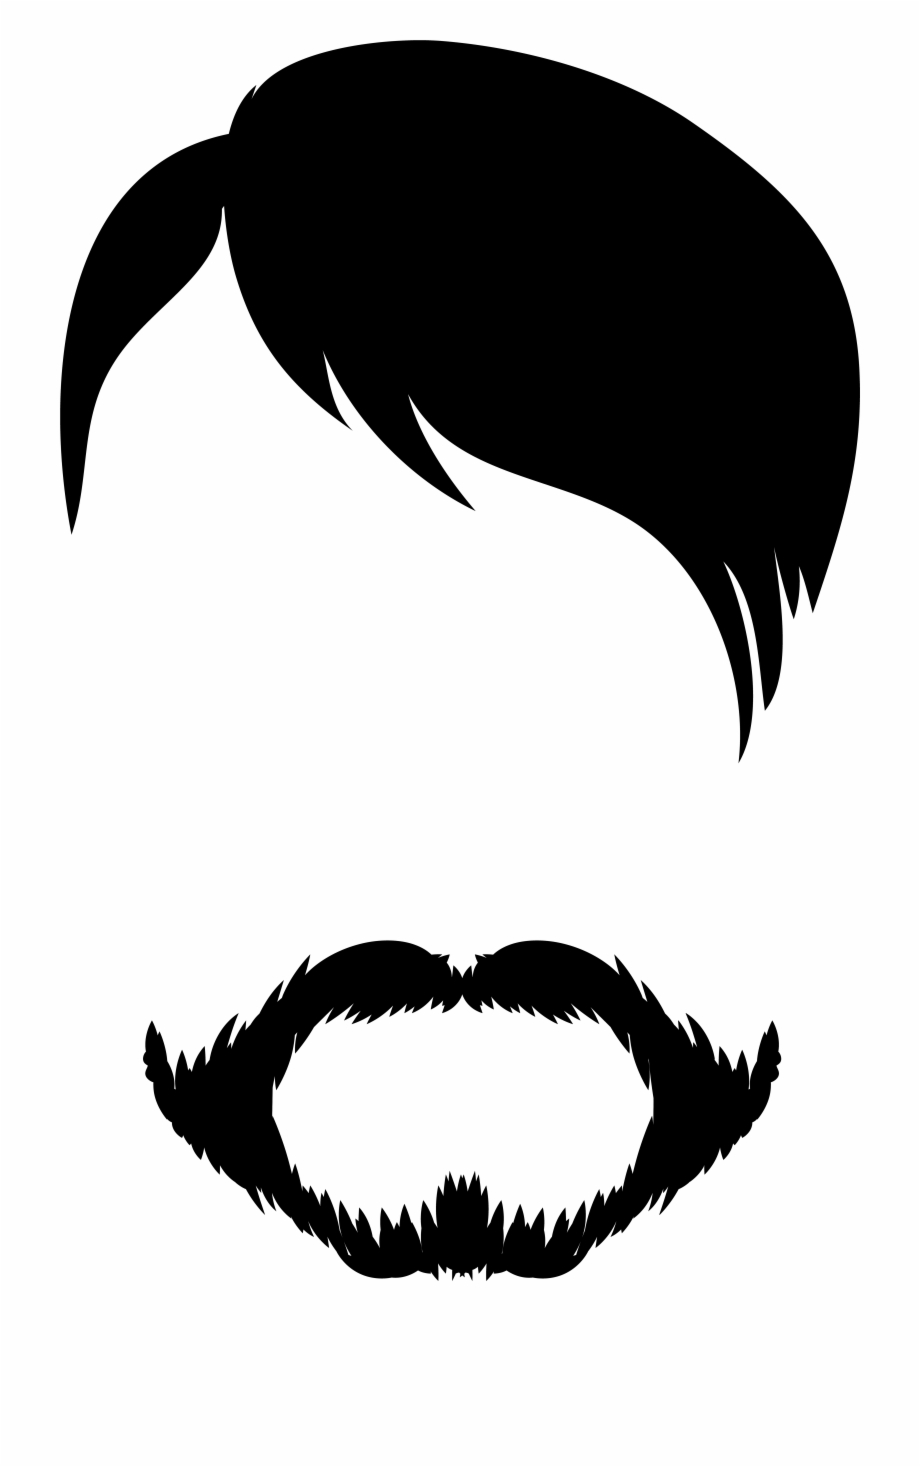 Men hair clipart clipart Male Hair And Png Clip Art Gallery Men - Clip Art Library clipart